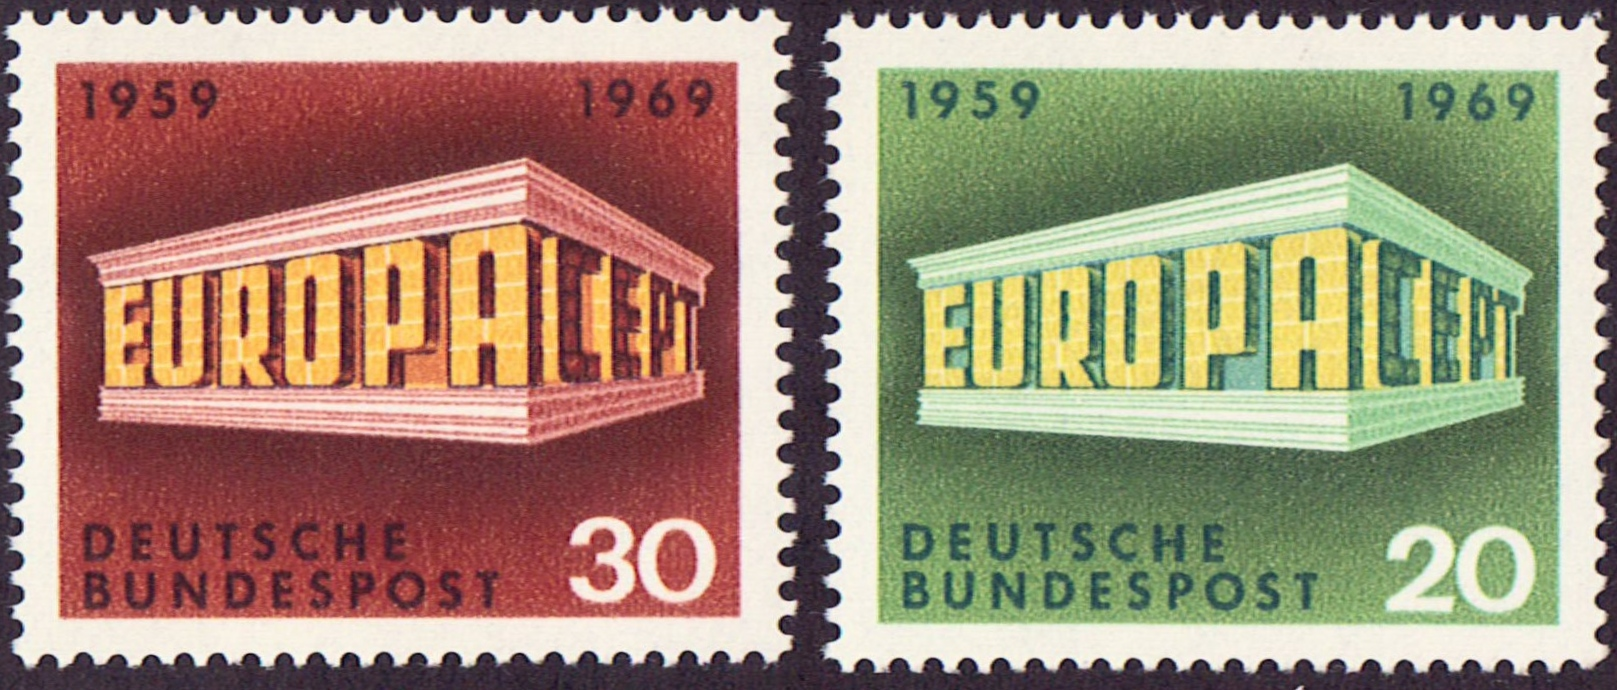 Germany Scott 0996-0997, MNH, Europa 1969, set of 2